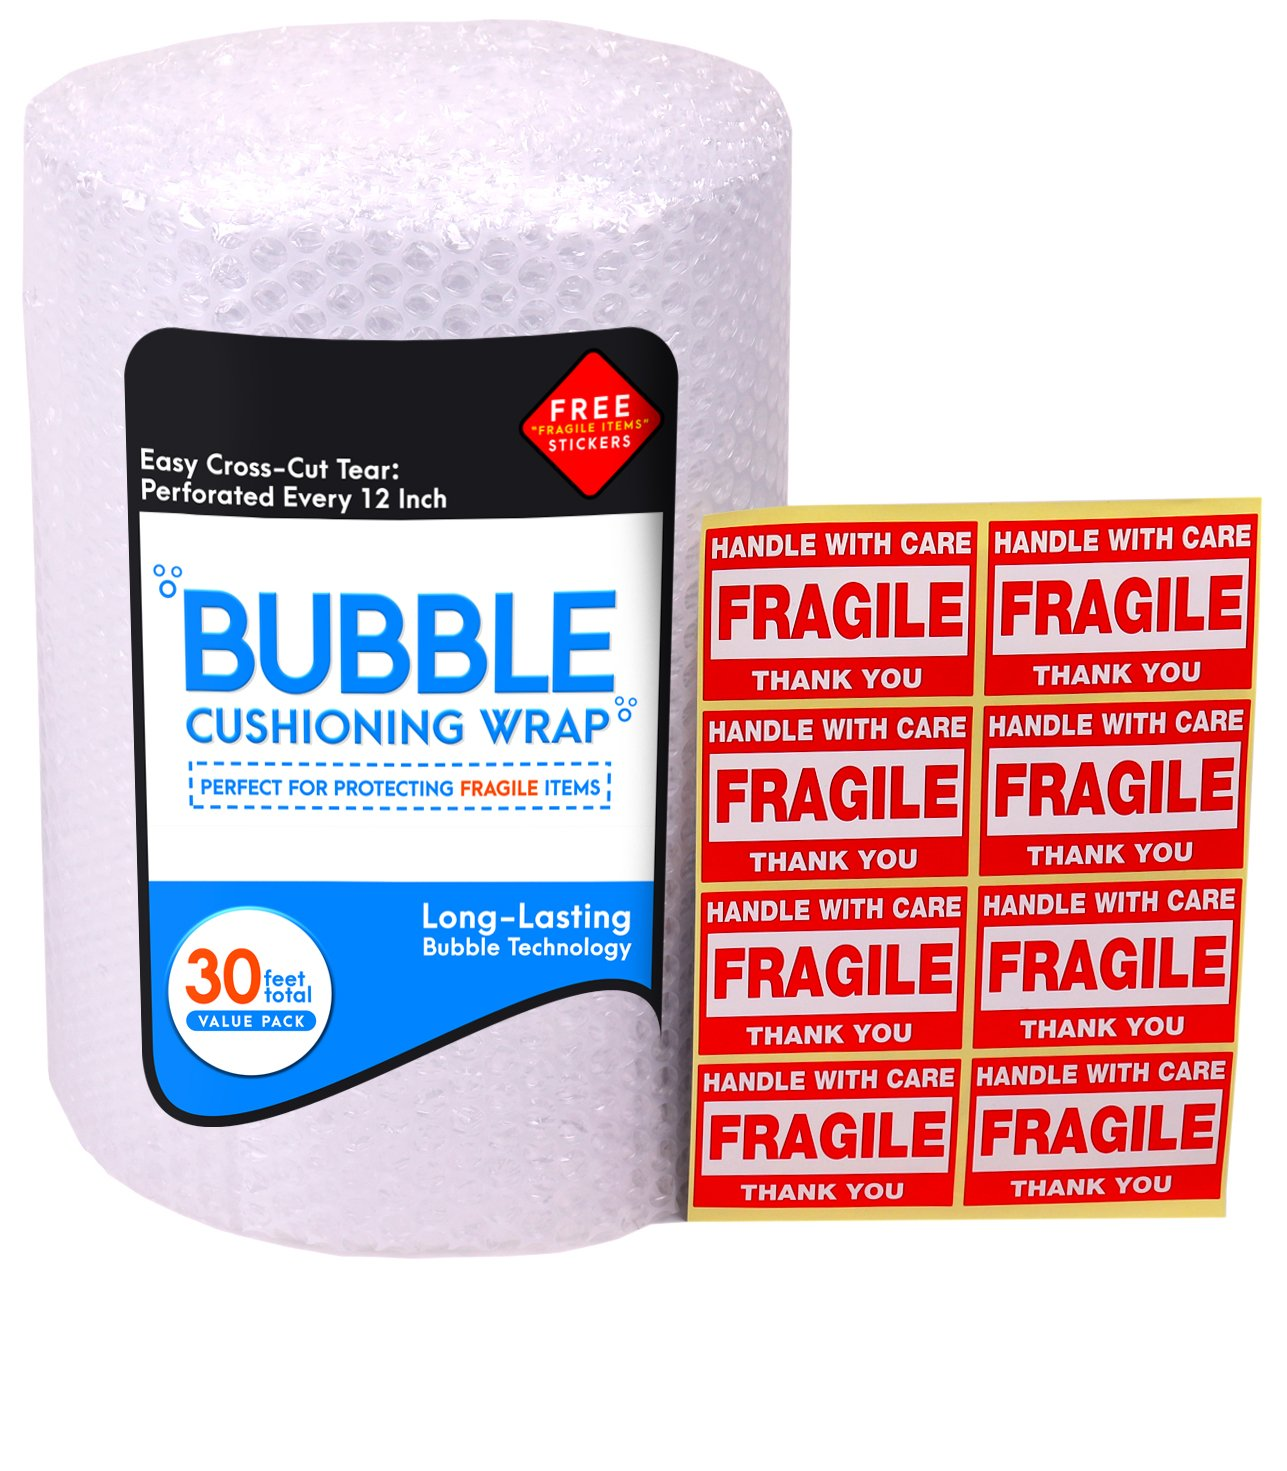 Bubble Cushioning Wrap Roll for Packing (3/16'', 12'' x 32 ft), Easy-to-Tear 12'' Sheets, Plus Free 8 'Fragiile, Handle with Care' Stickers